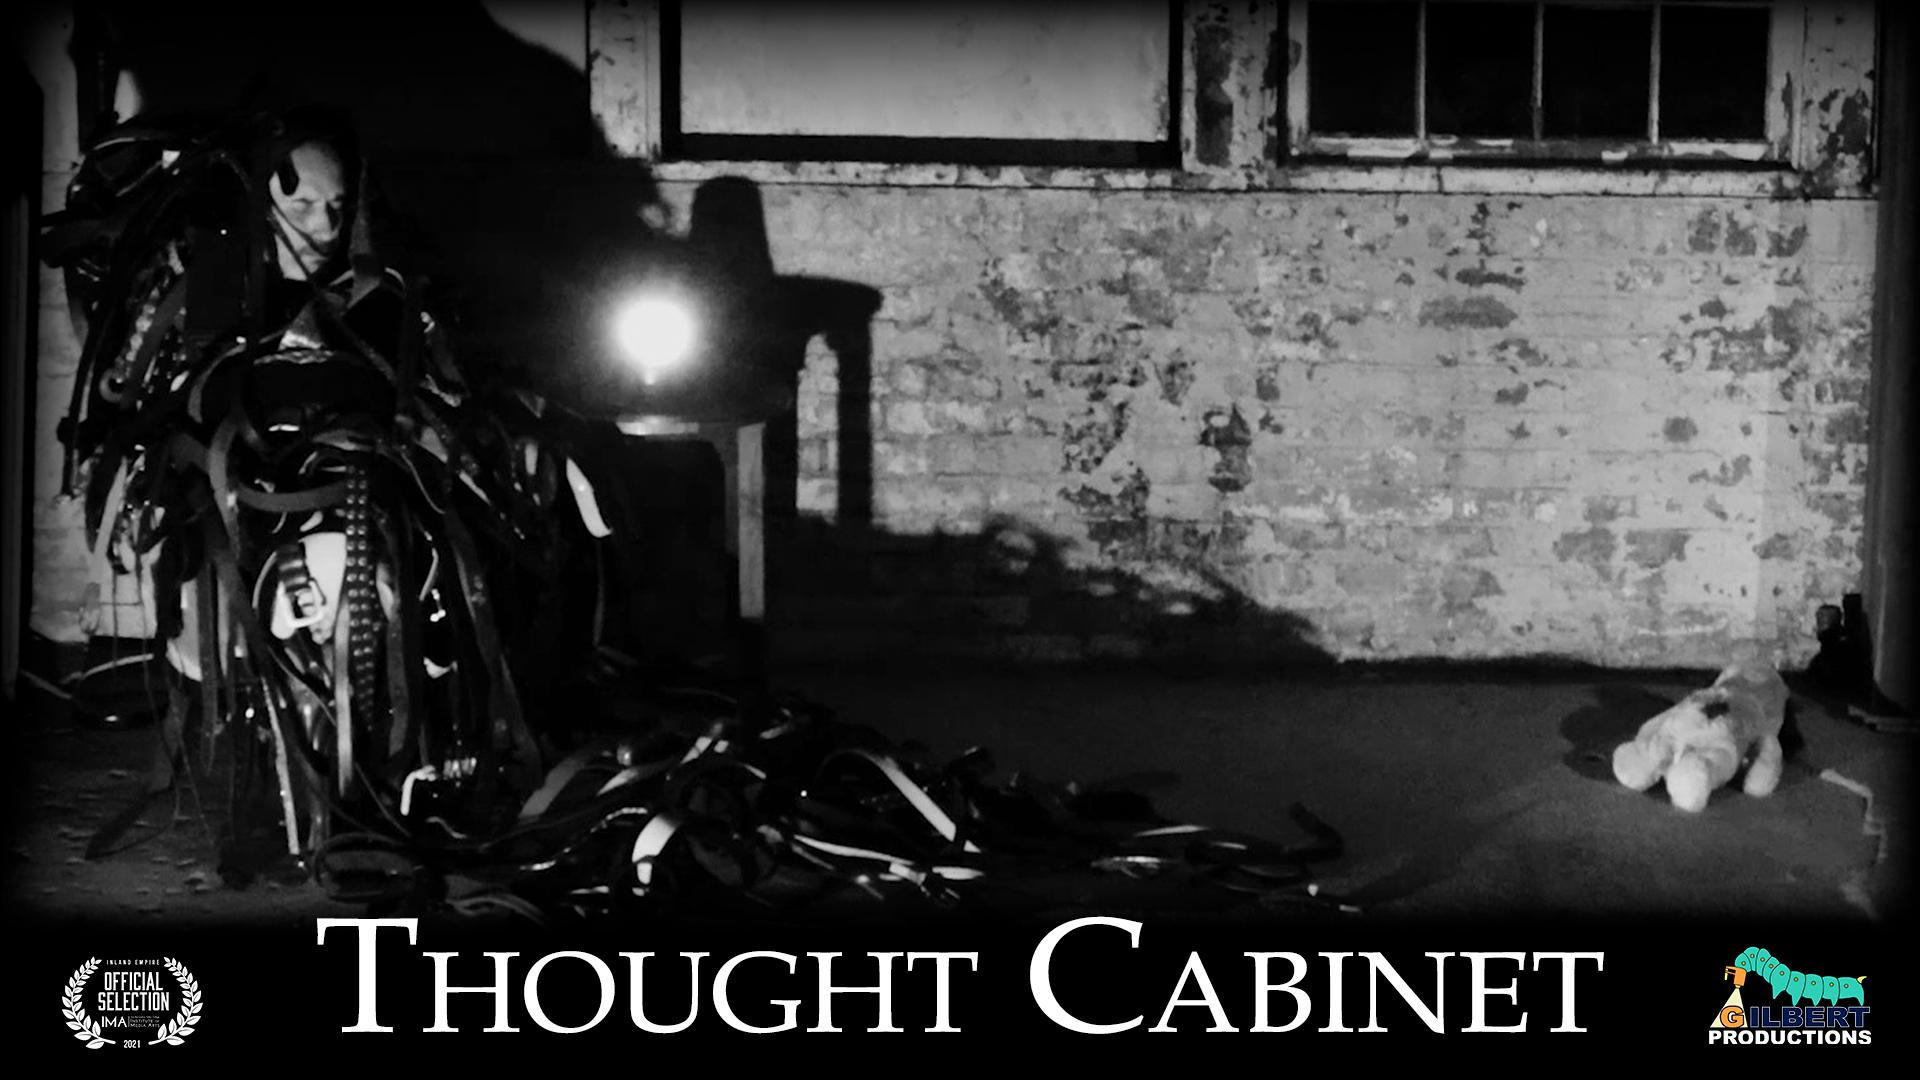 Thought Cabinet